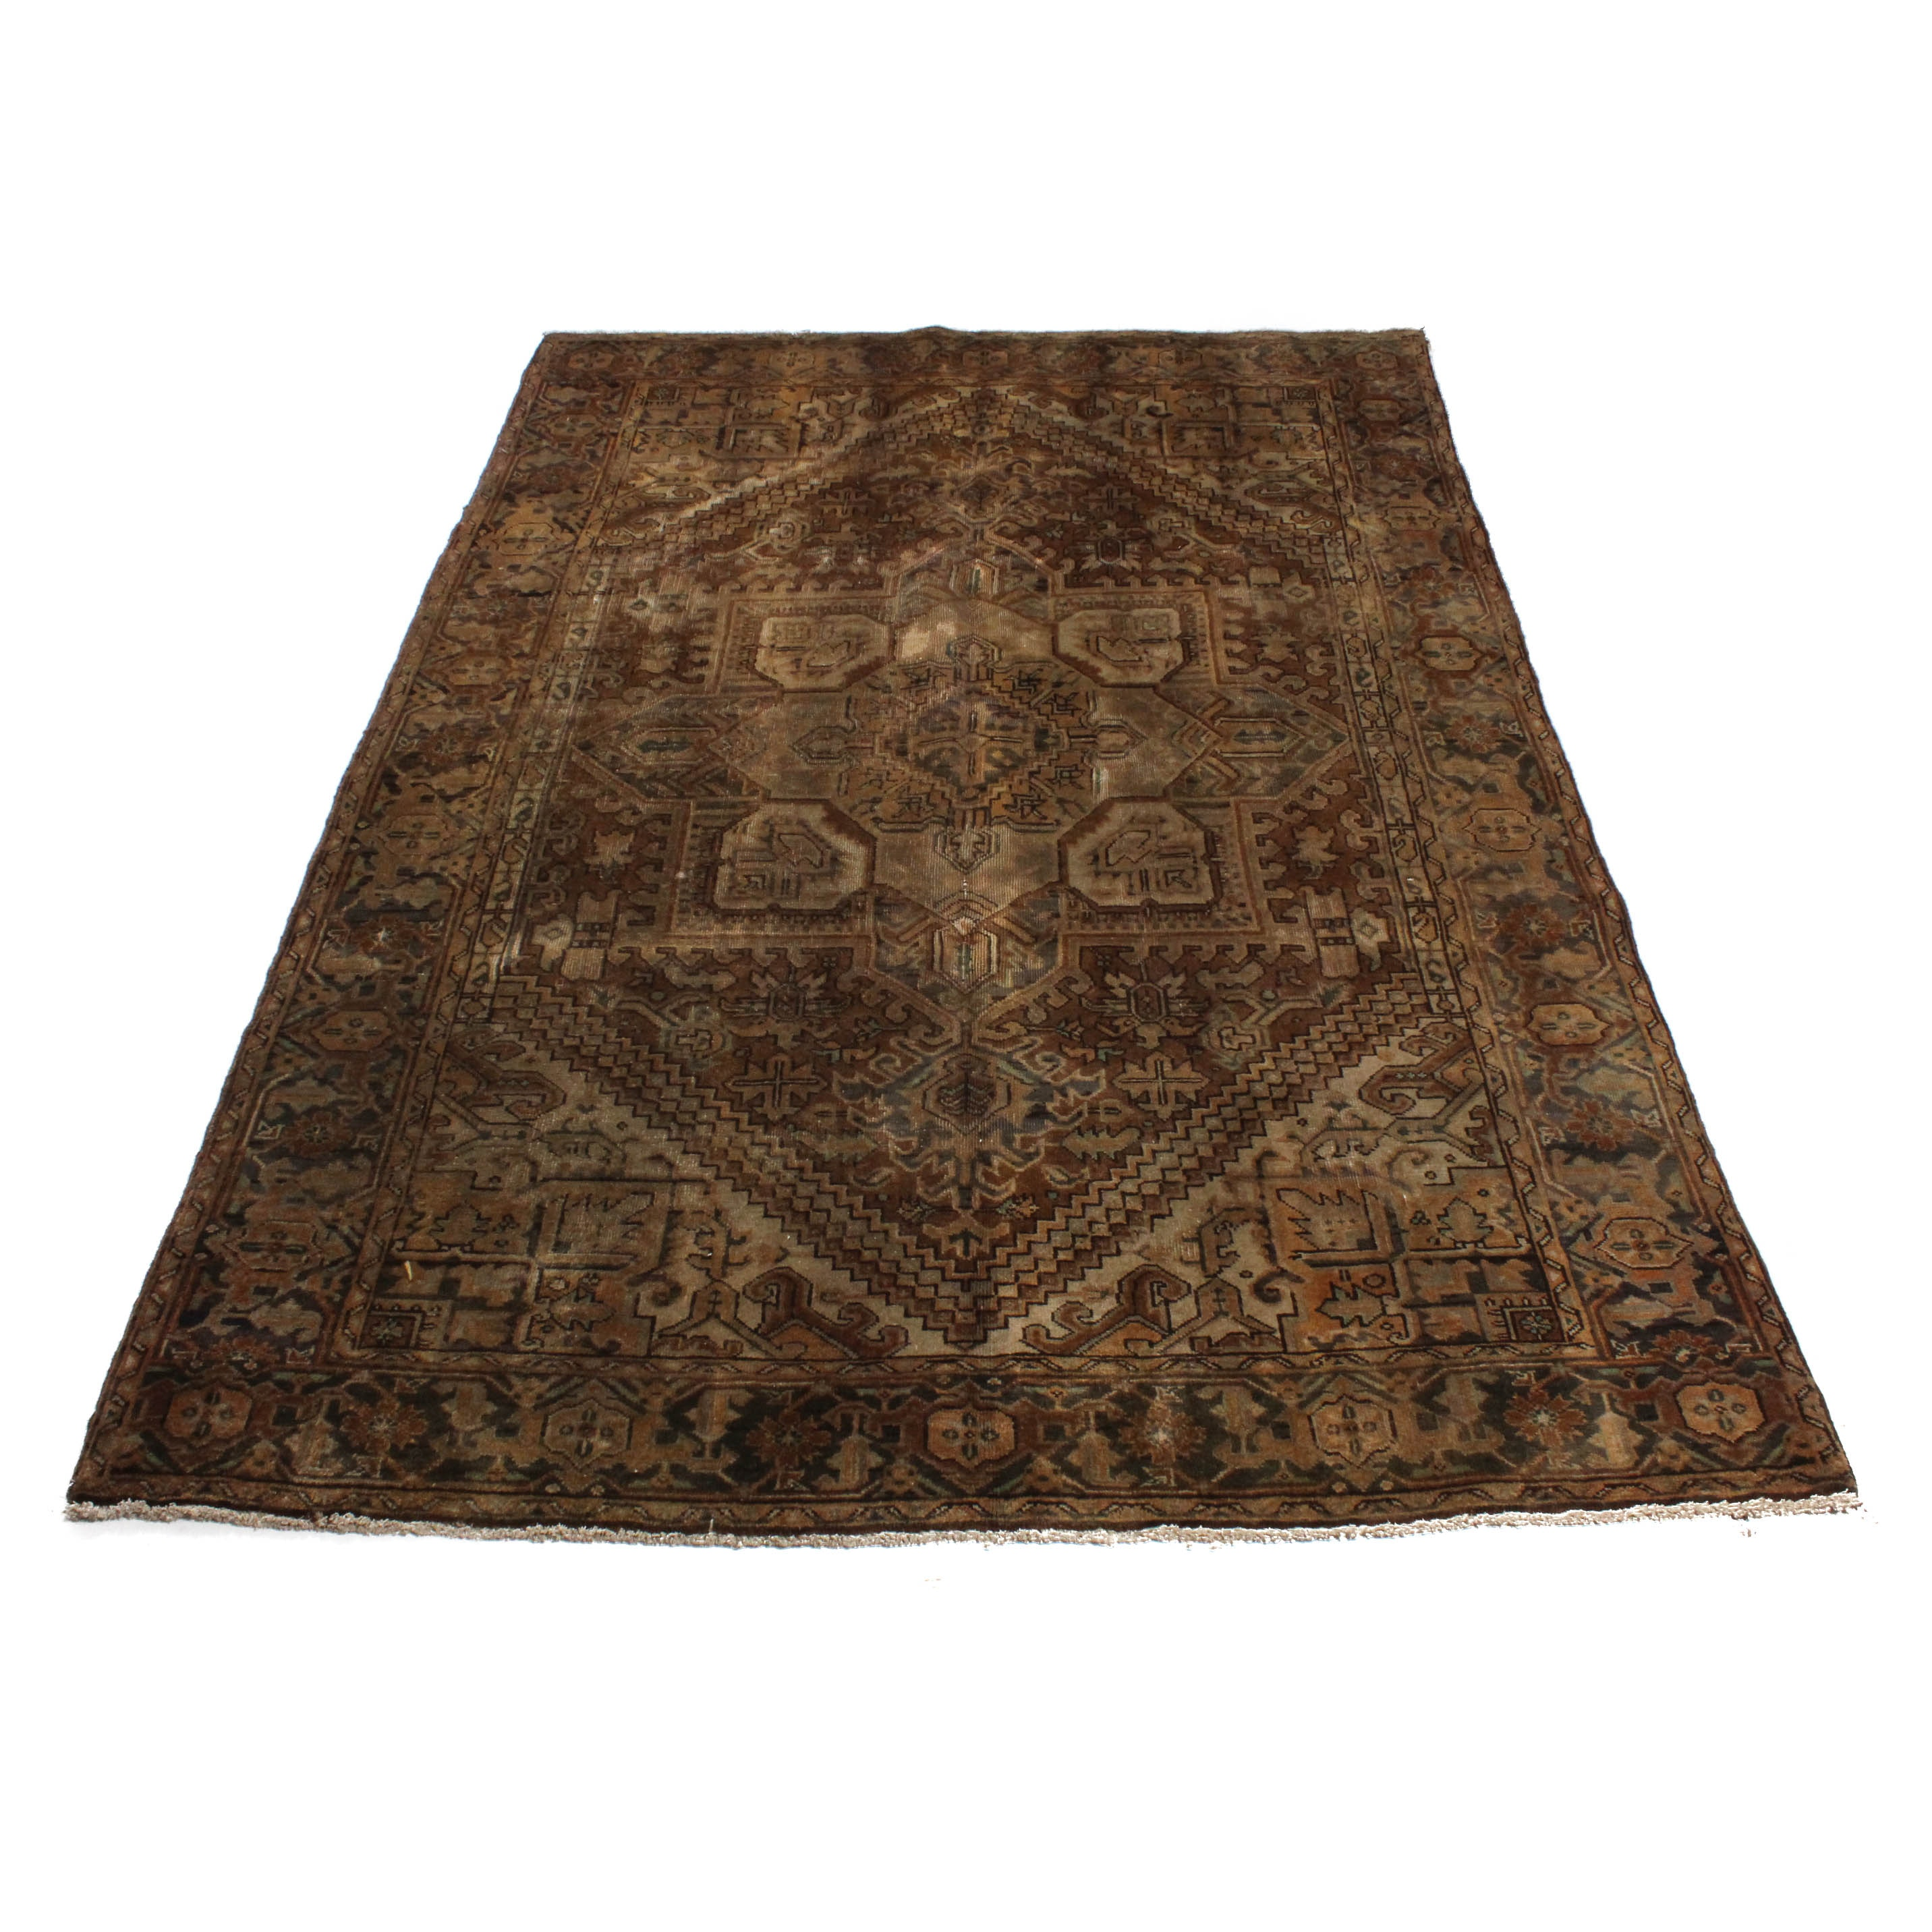 Antique Hand-Knotted Persian Heriz Area Rug